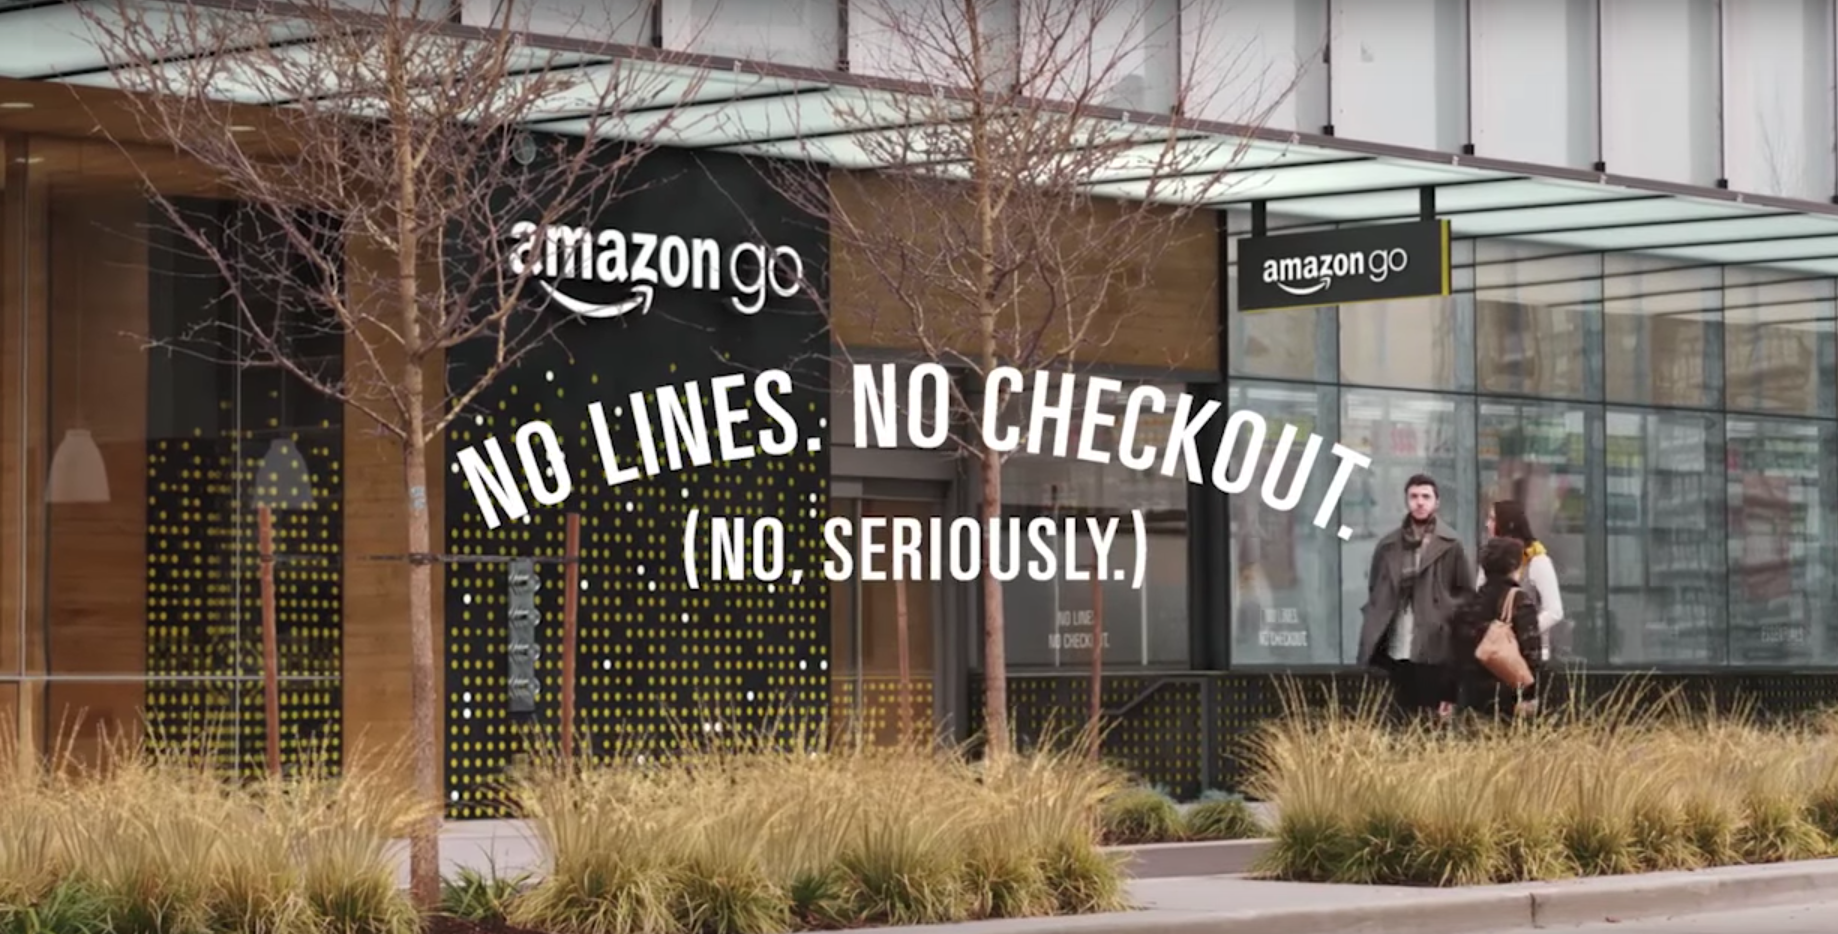 Amazon just solved the worst part of the grocery store !!-https://res.cloudinary.com/matome-cdn/image/upload/v1480971698/kzj9y2y5uhaj6e1uuonl.png